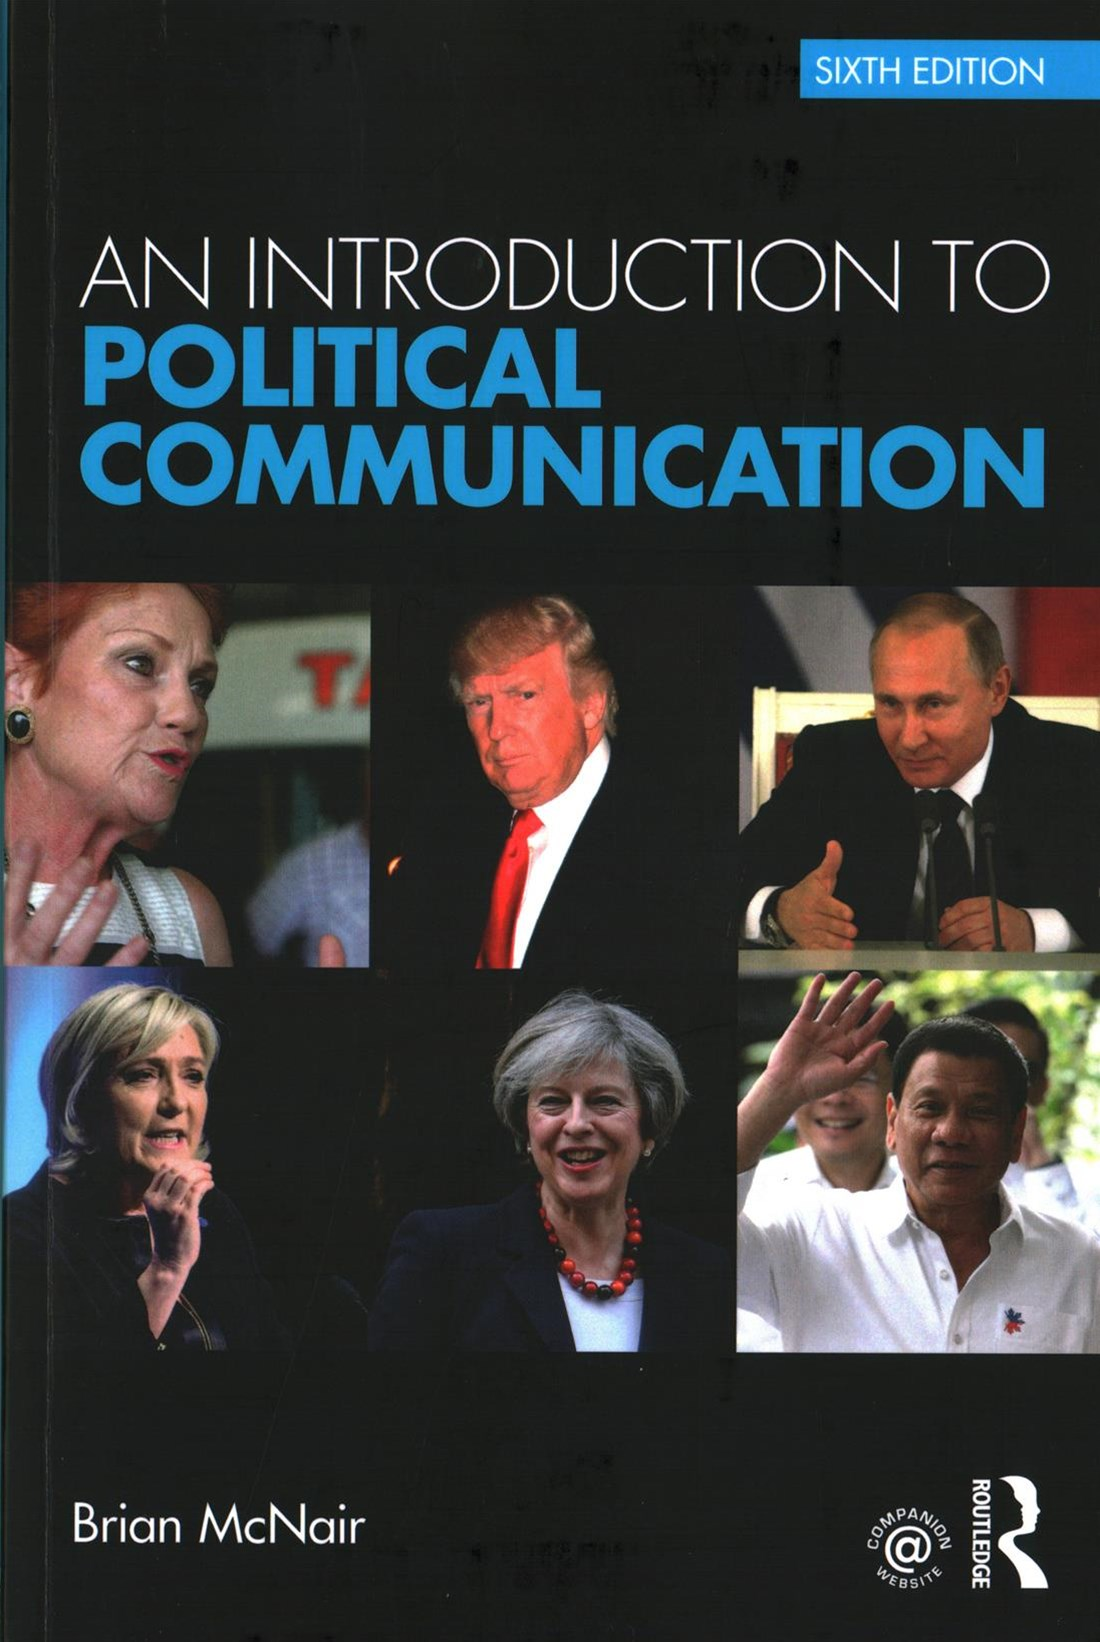 Introduction to Political Communication